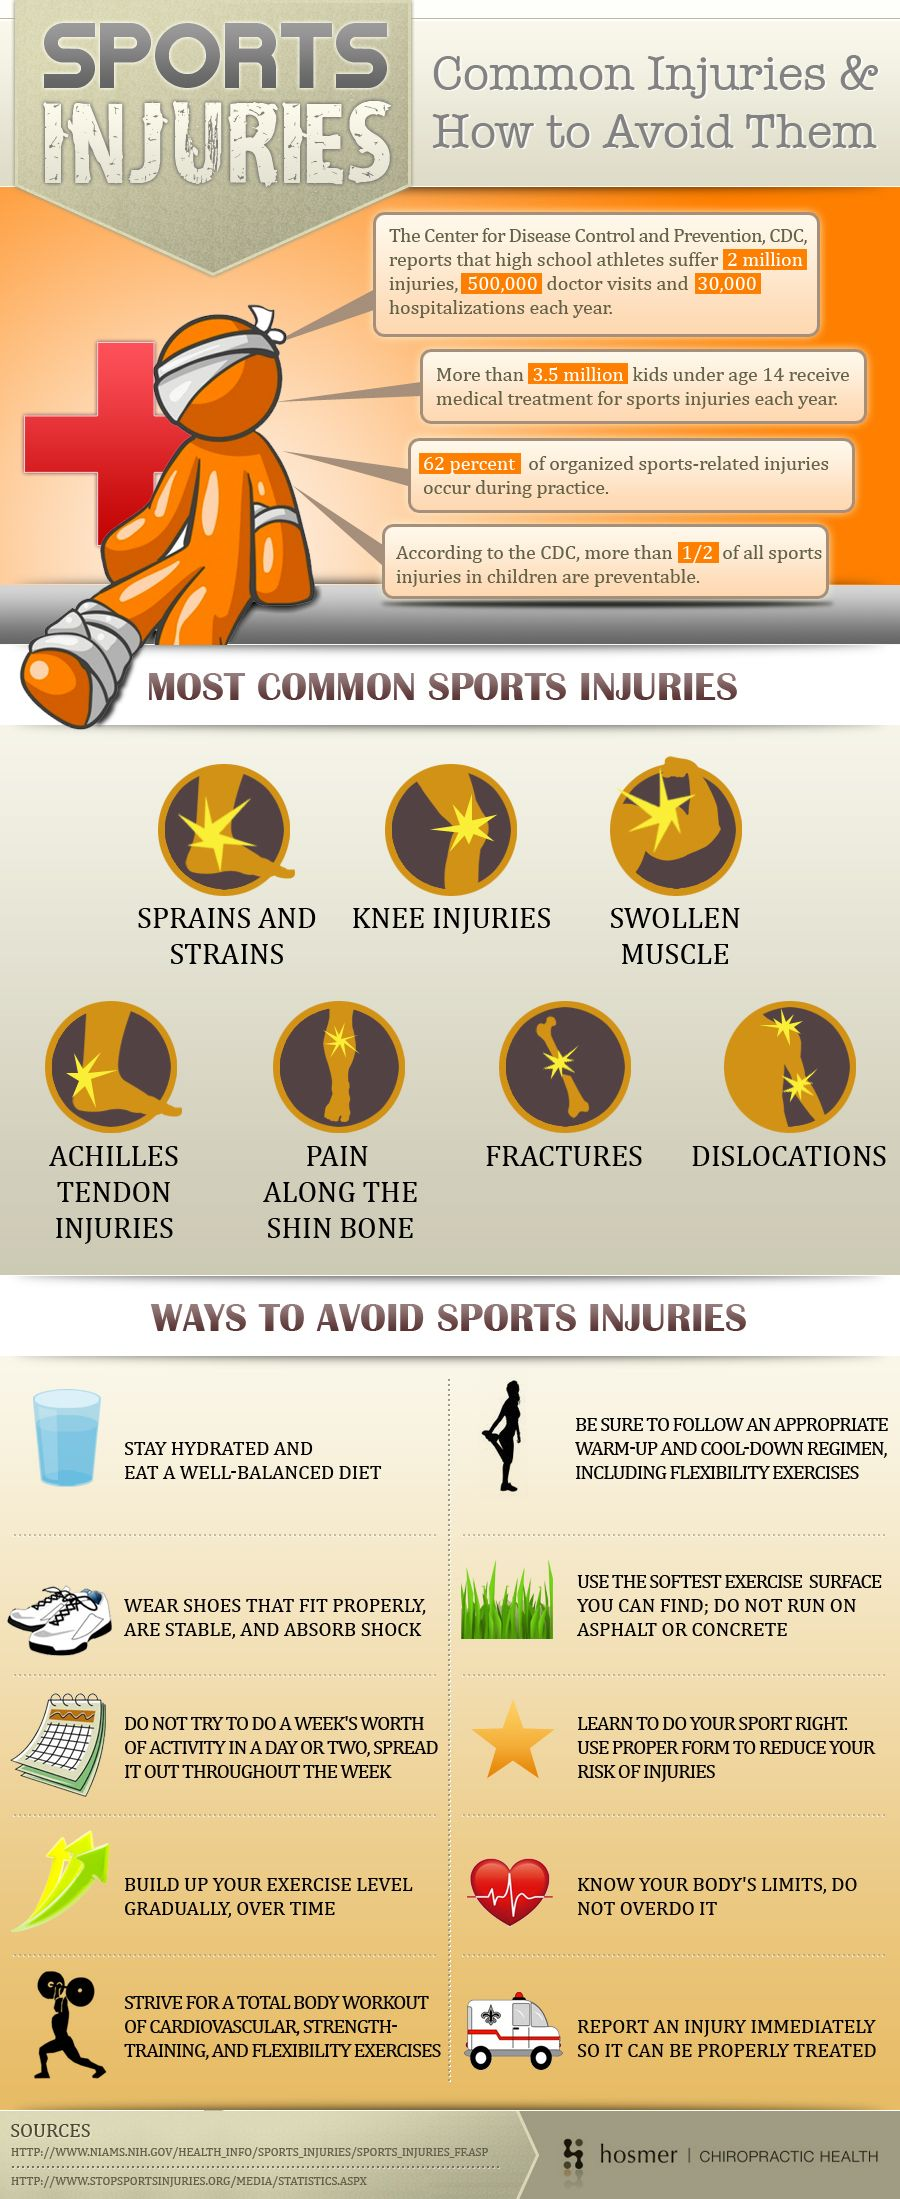 Common Injuries & How to Avoid Them via tribesports